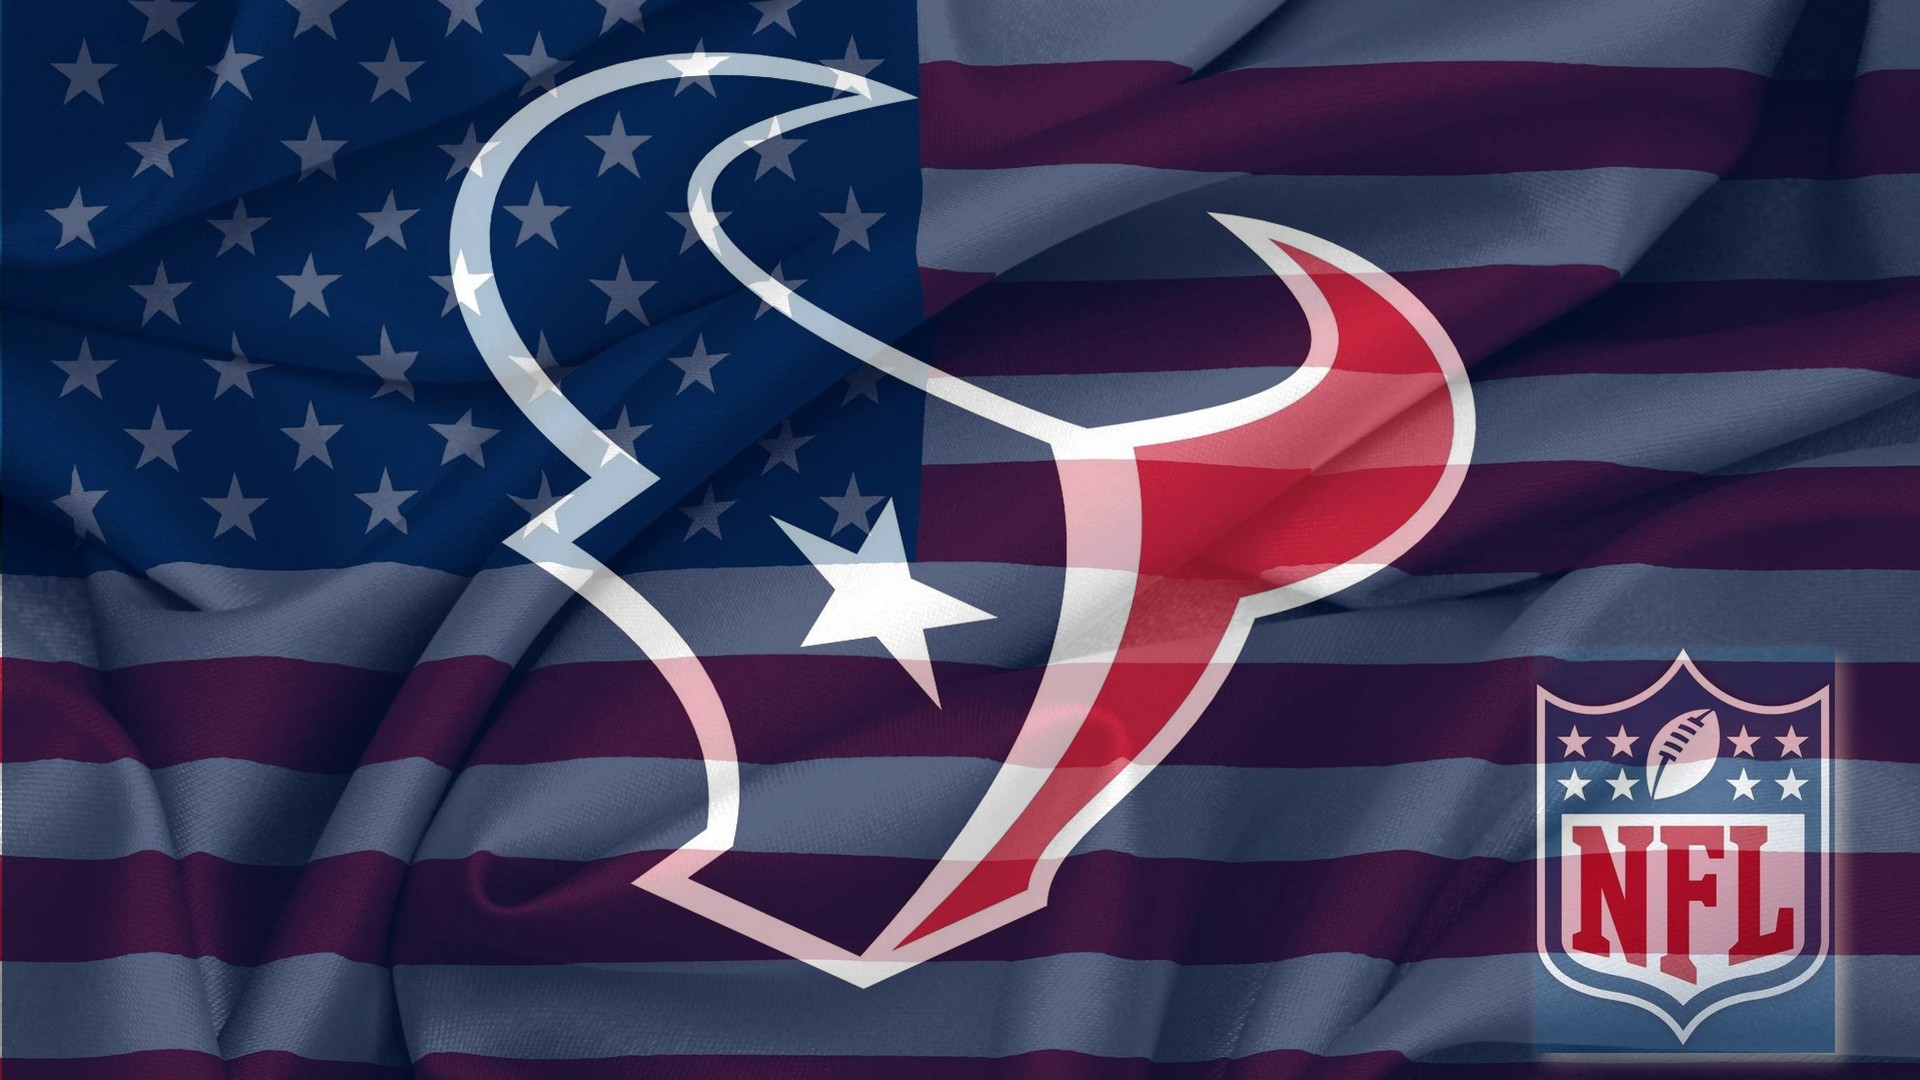 Texans Wallpaper Iphone Houston texans nfl football f 1920x1080